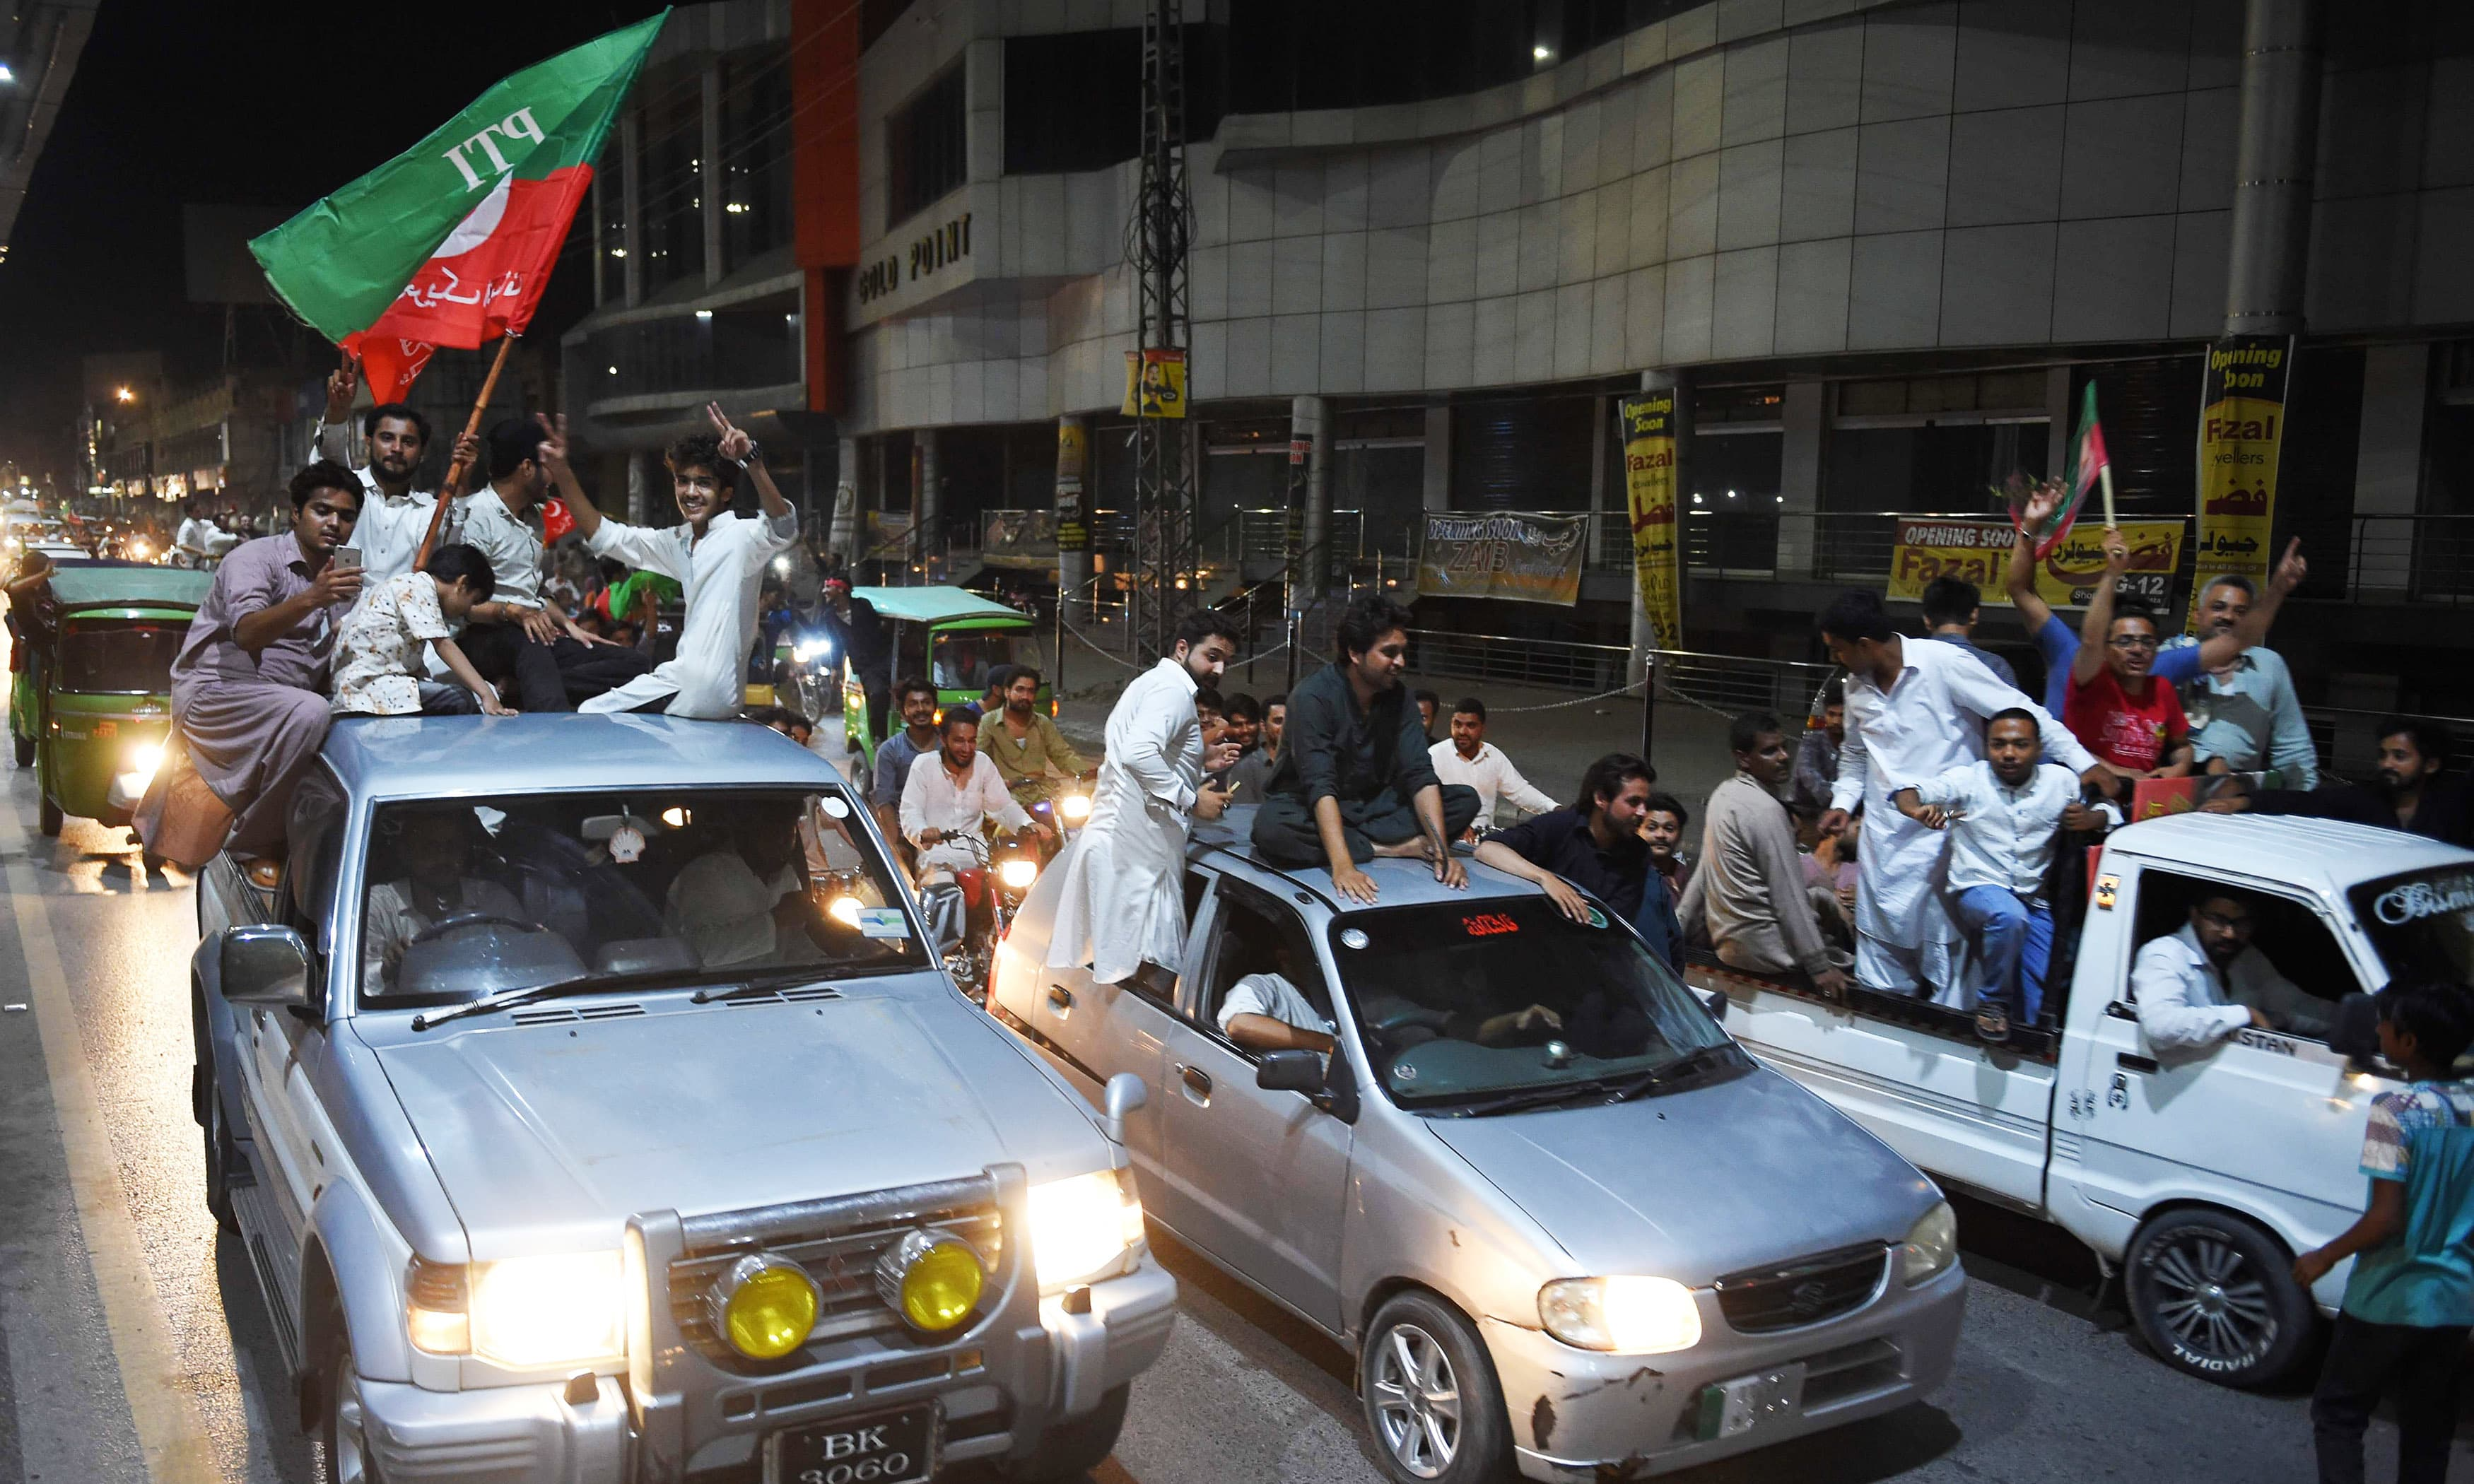 PTI supporters ride on vehicles in a convoy as they celebrate in Rawalpindi. —AFP